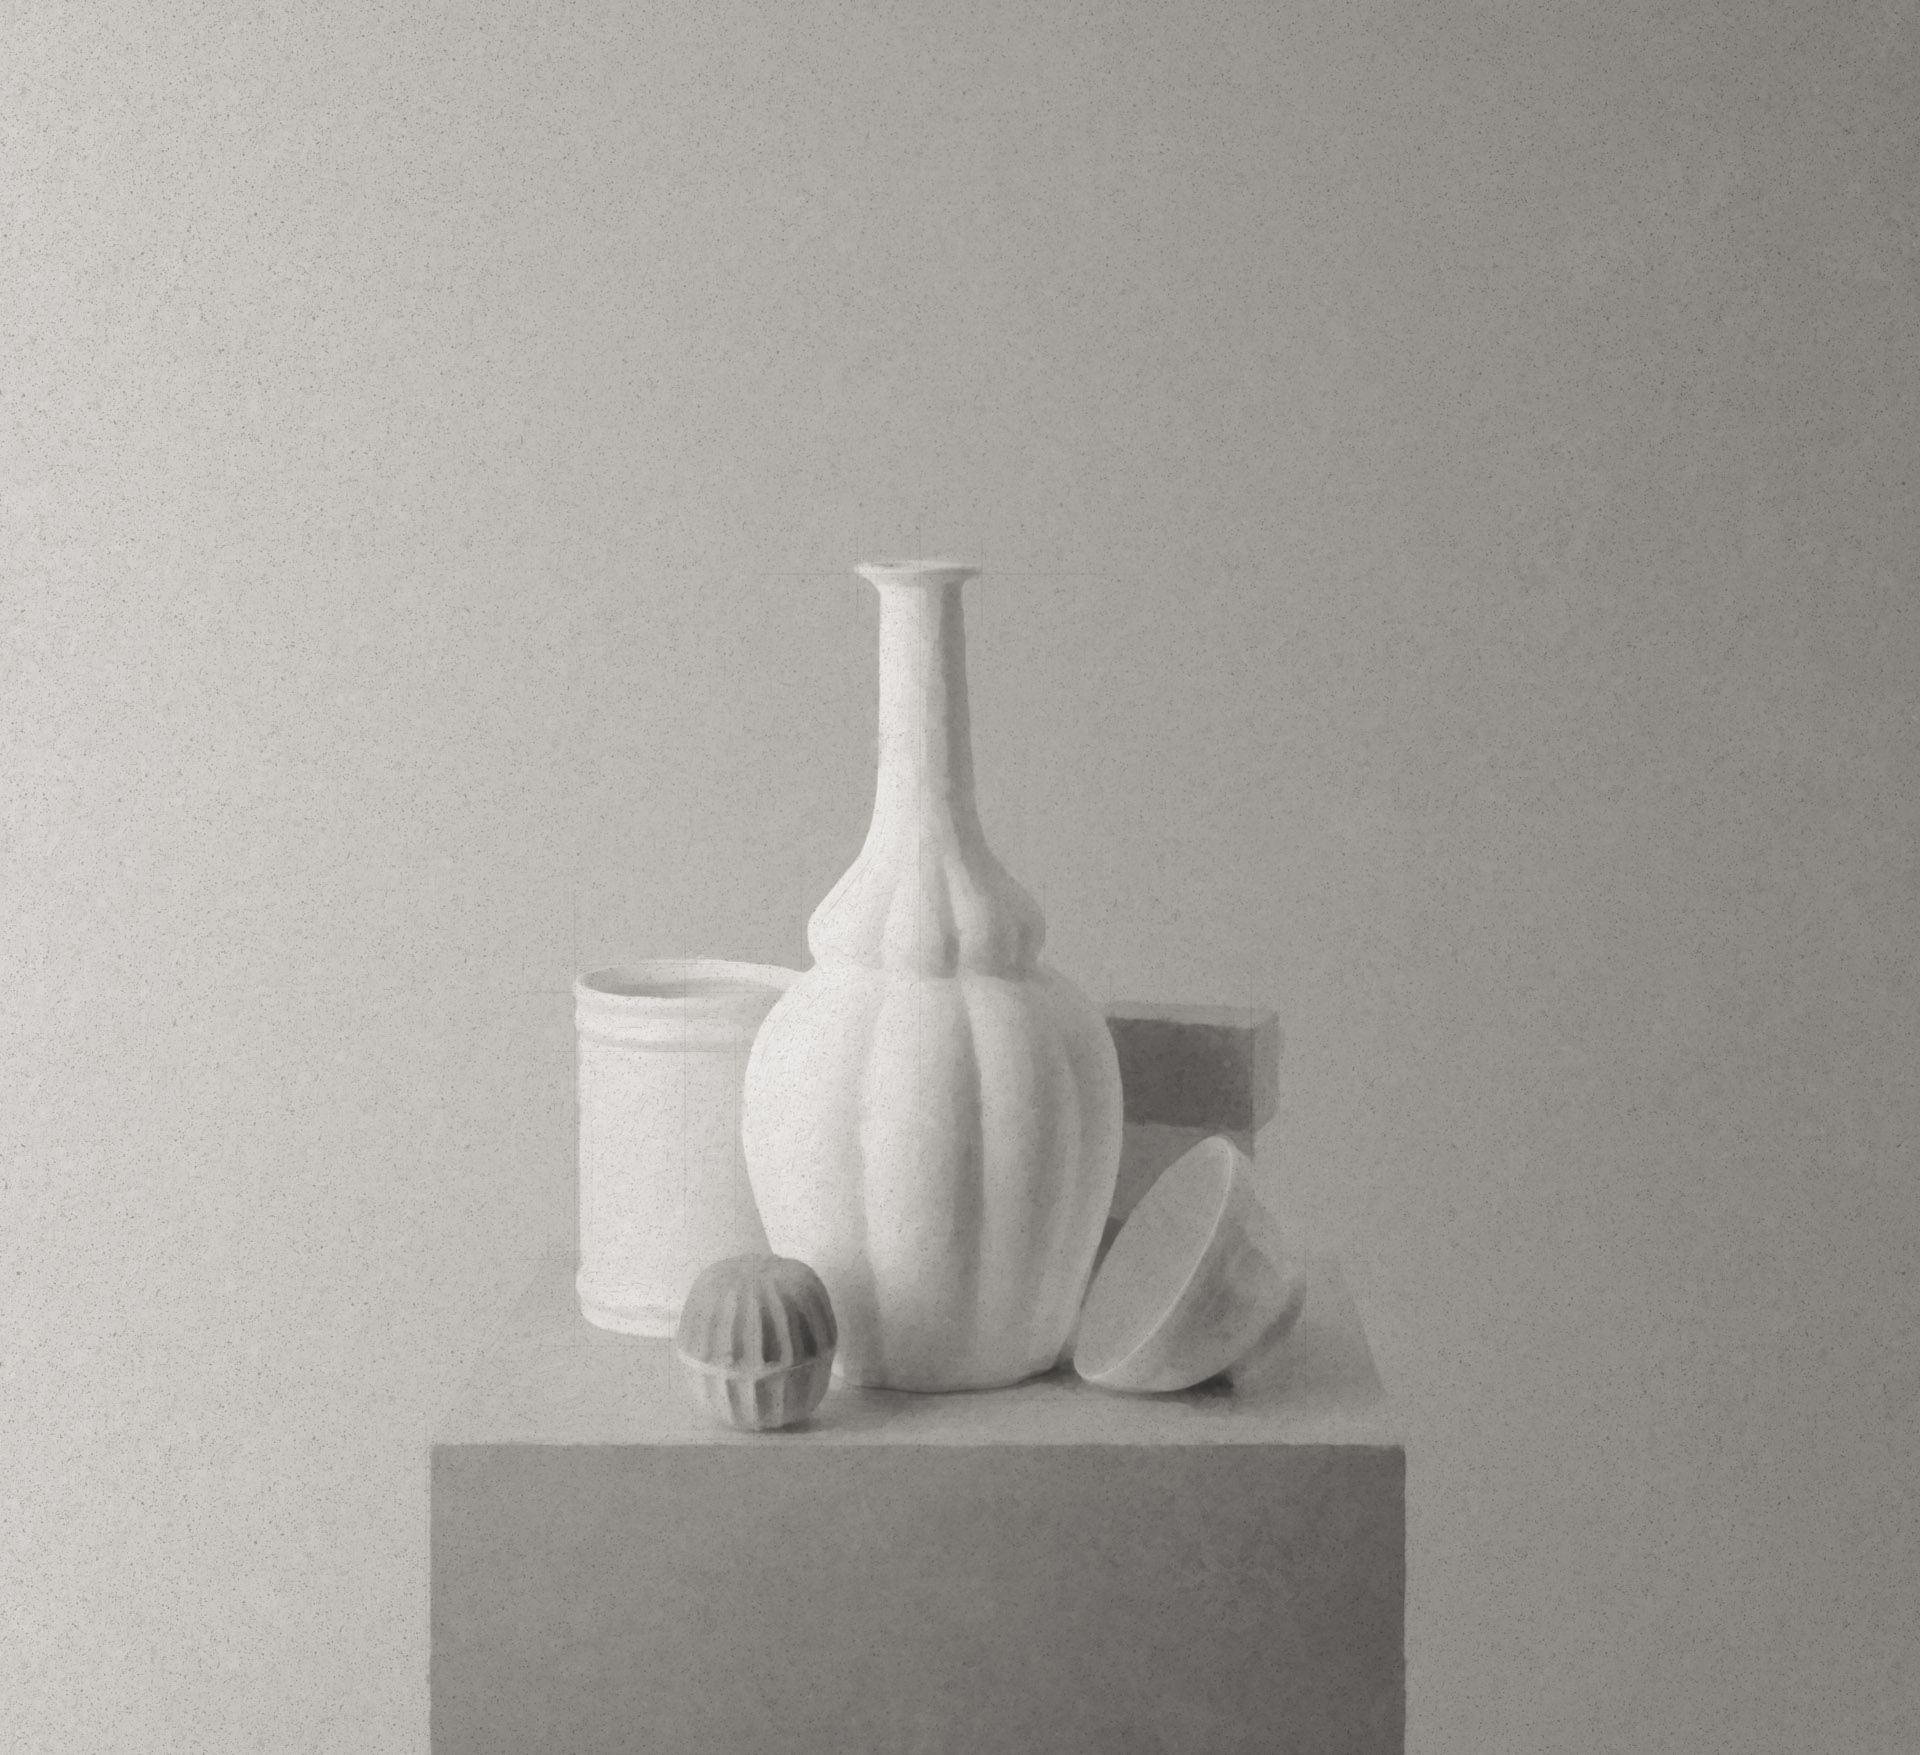 Morandi on a Pedestal 182